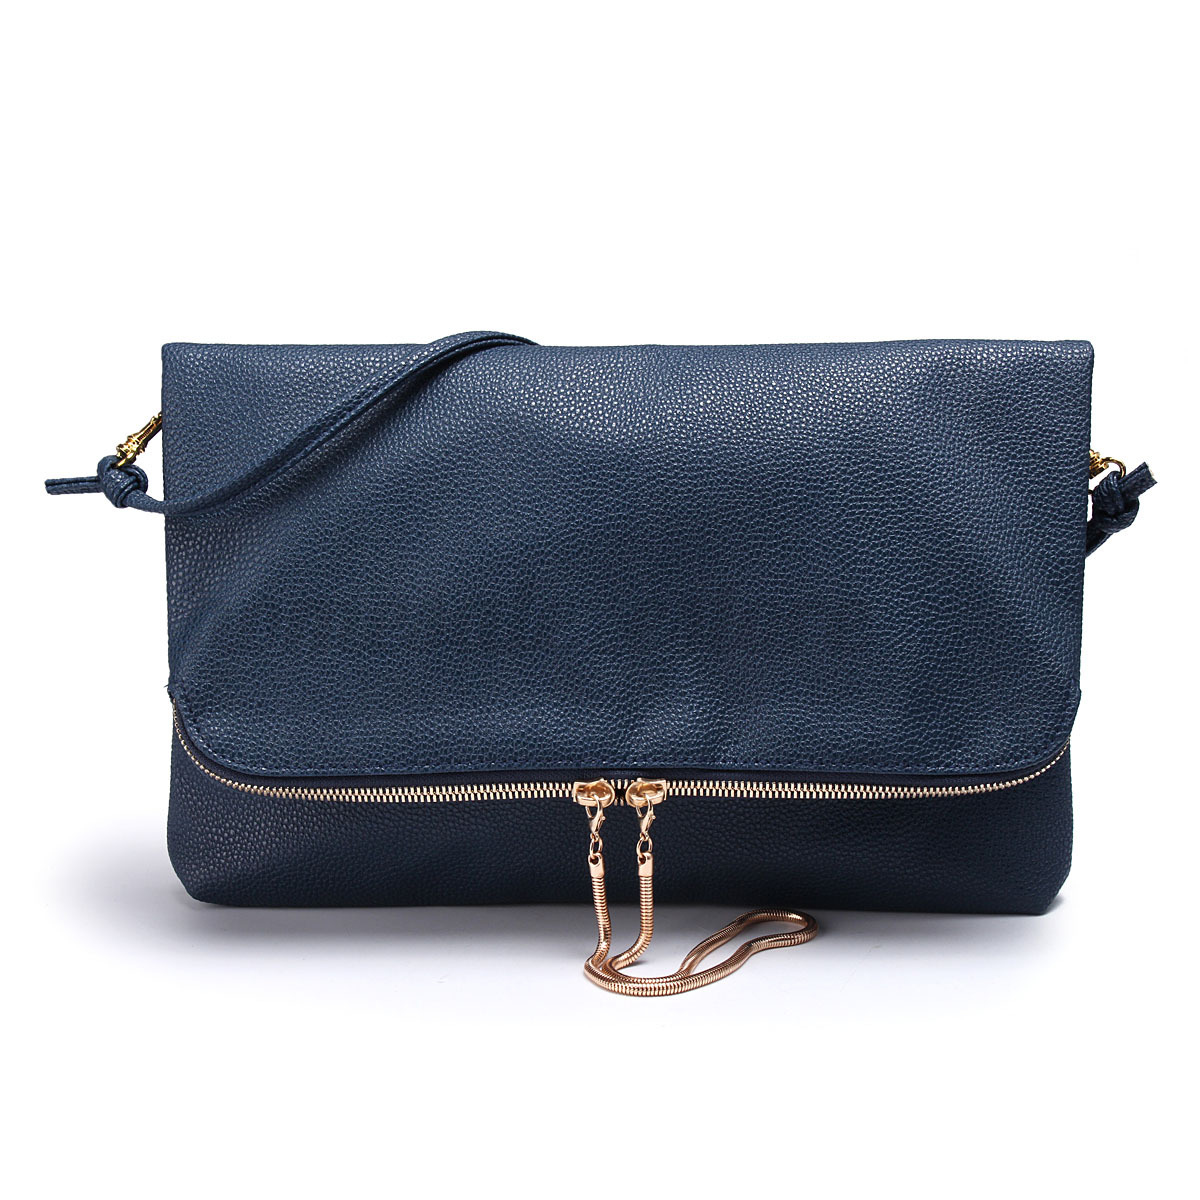 Fashion Women PU Leather Sling Fold Over Handbags Bags ...